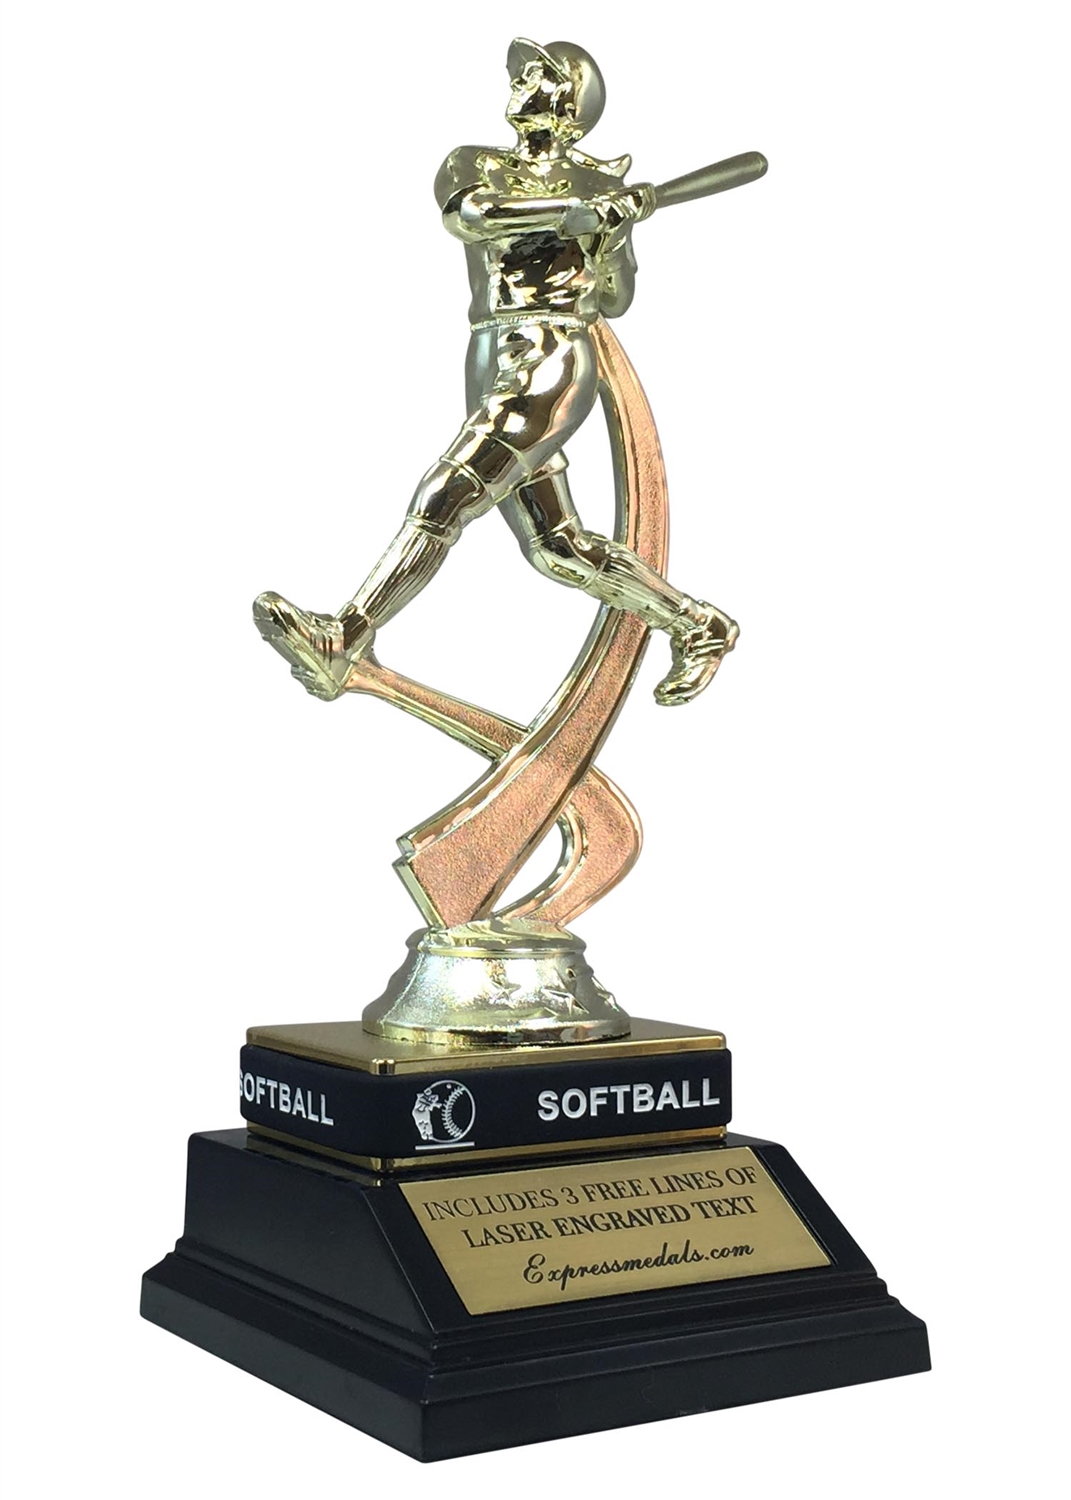 Softball Trophy with Wrist Band